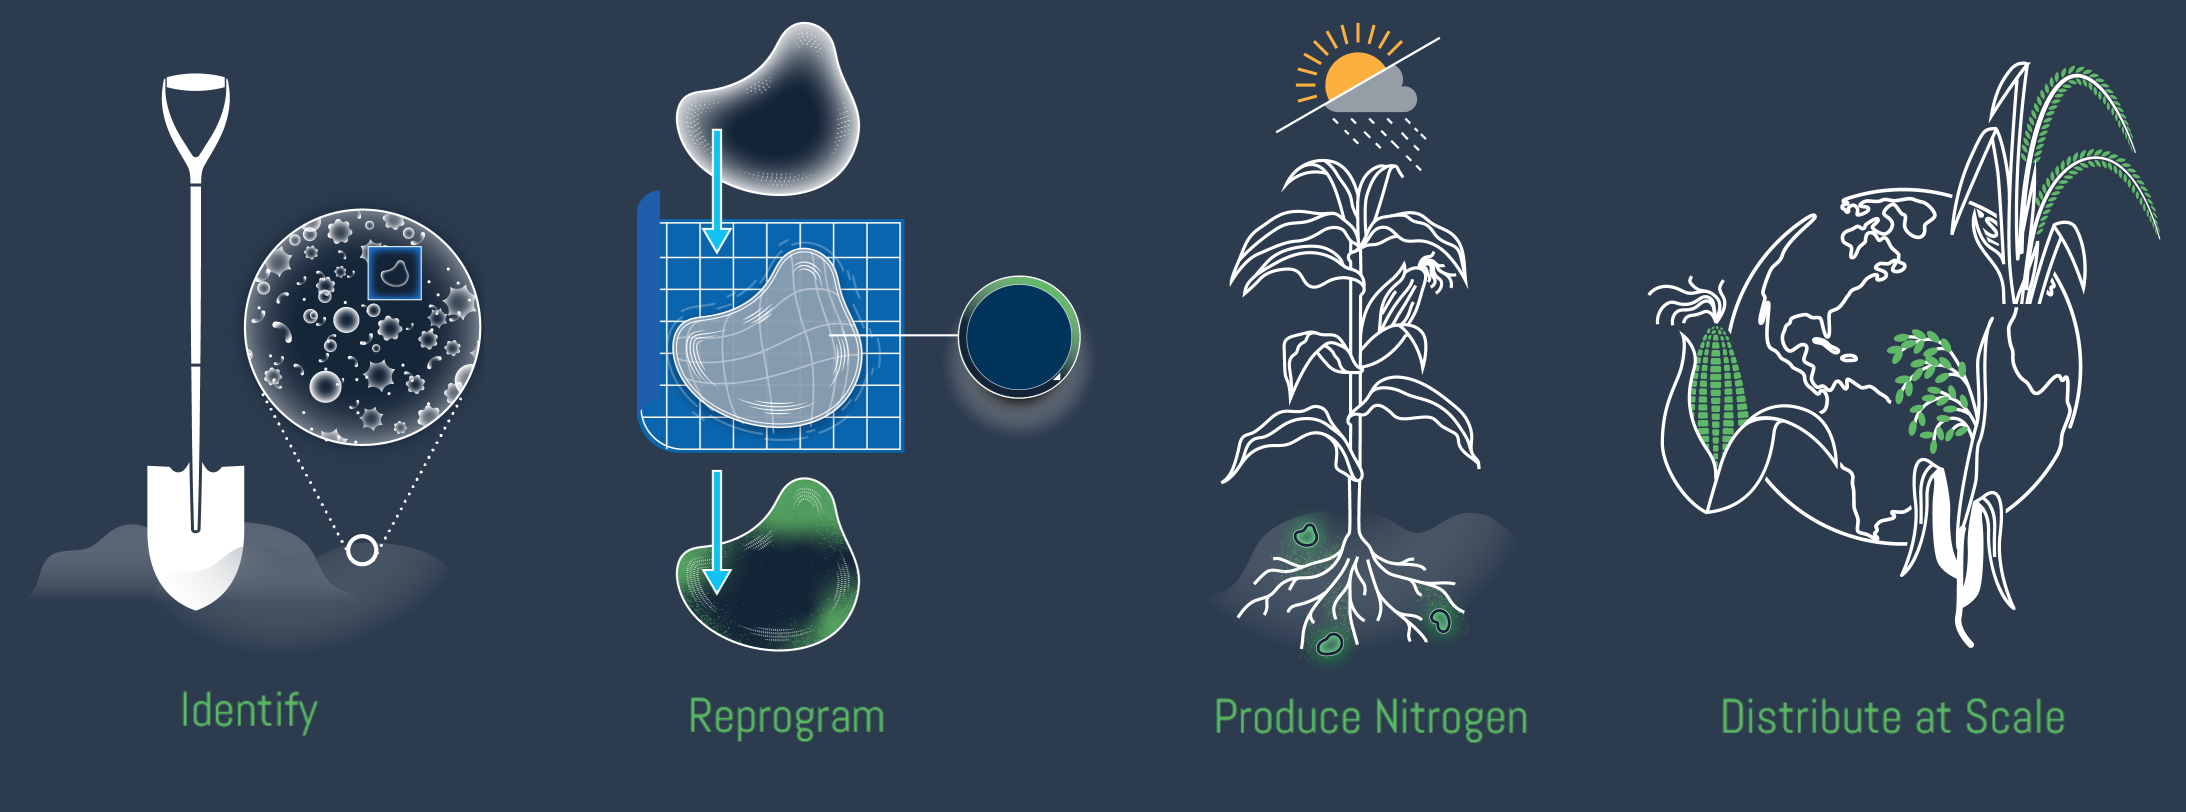 Illustration showing stages of modifying and deploying nitrogen-producing microbes.